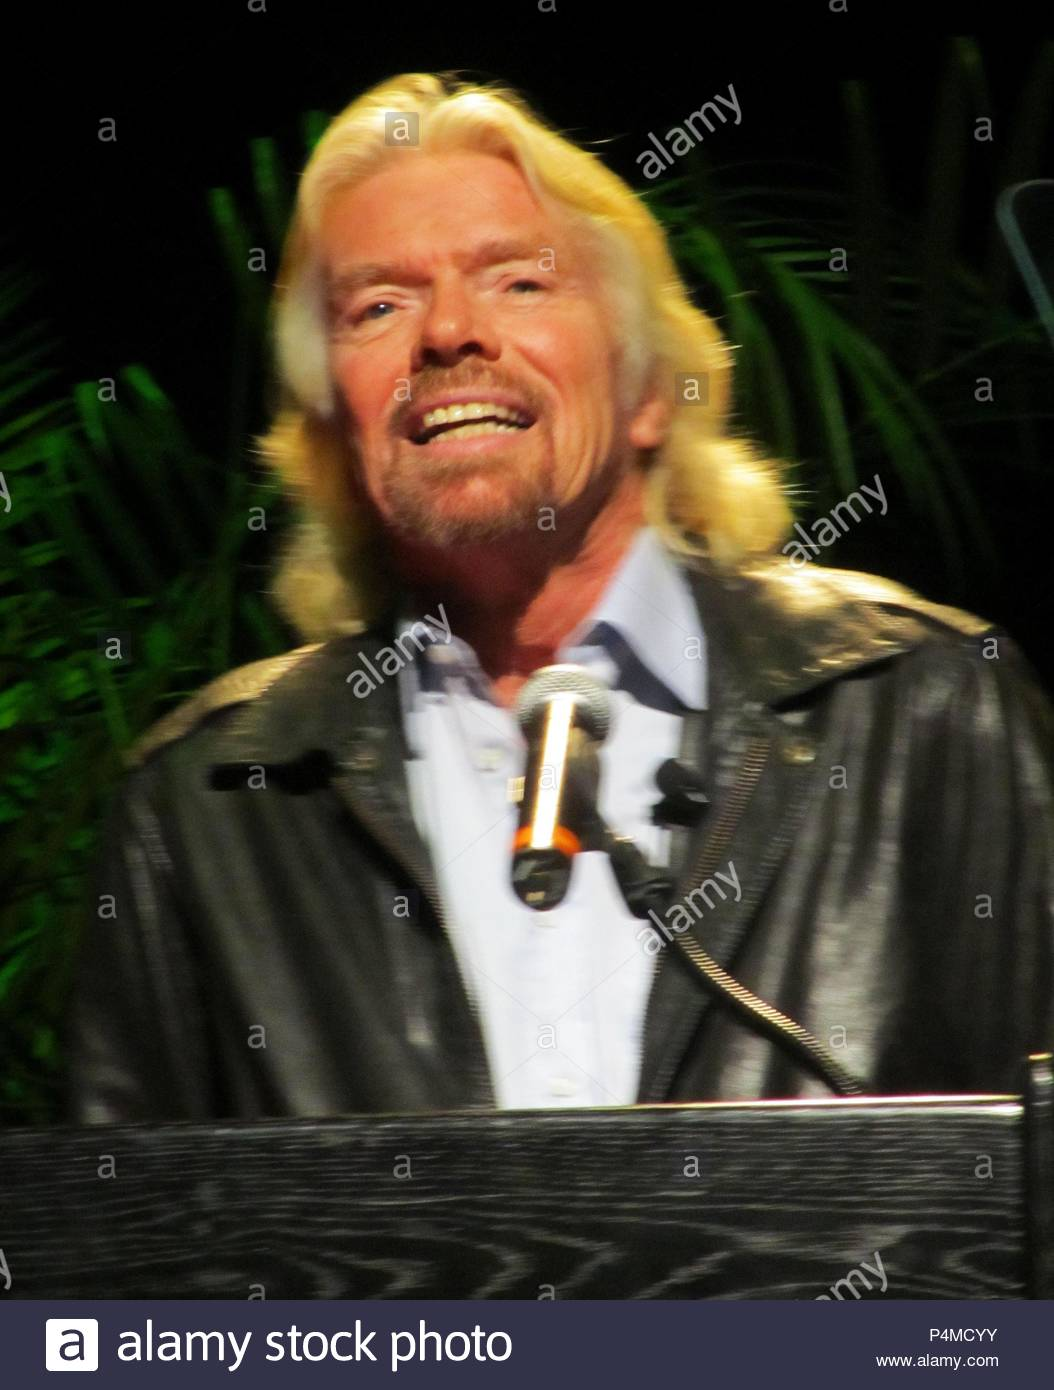 Richard Branson Announces That Virgin Is Working On Of Electric Cars